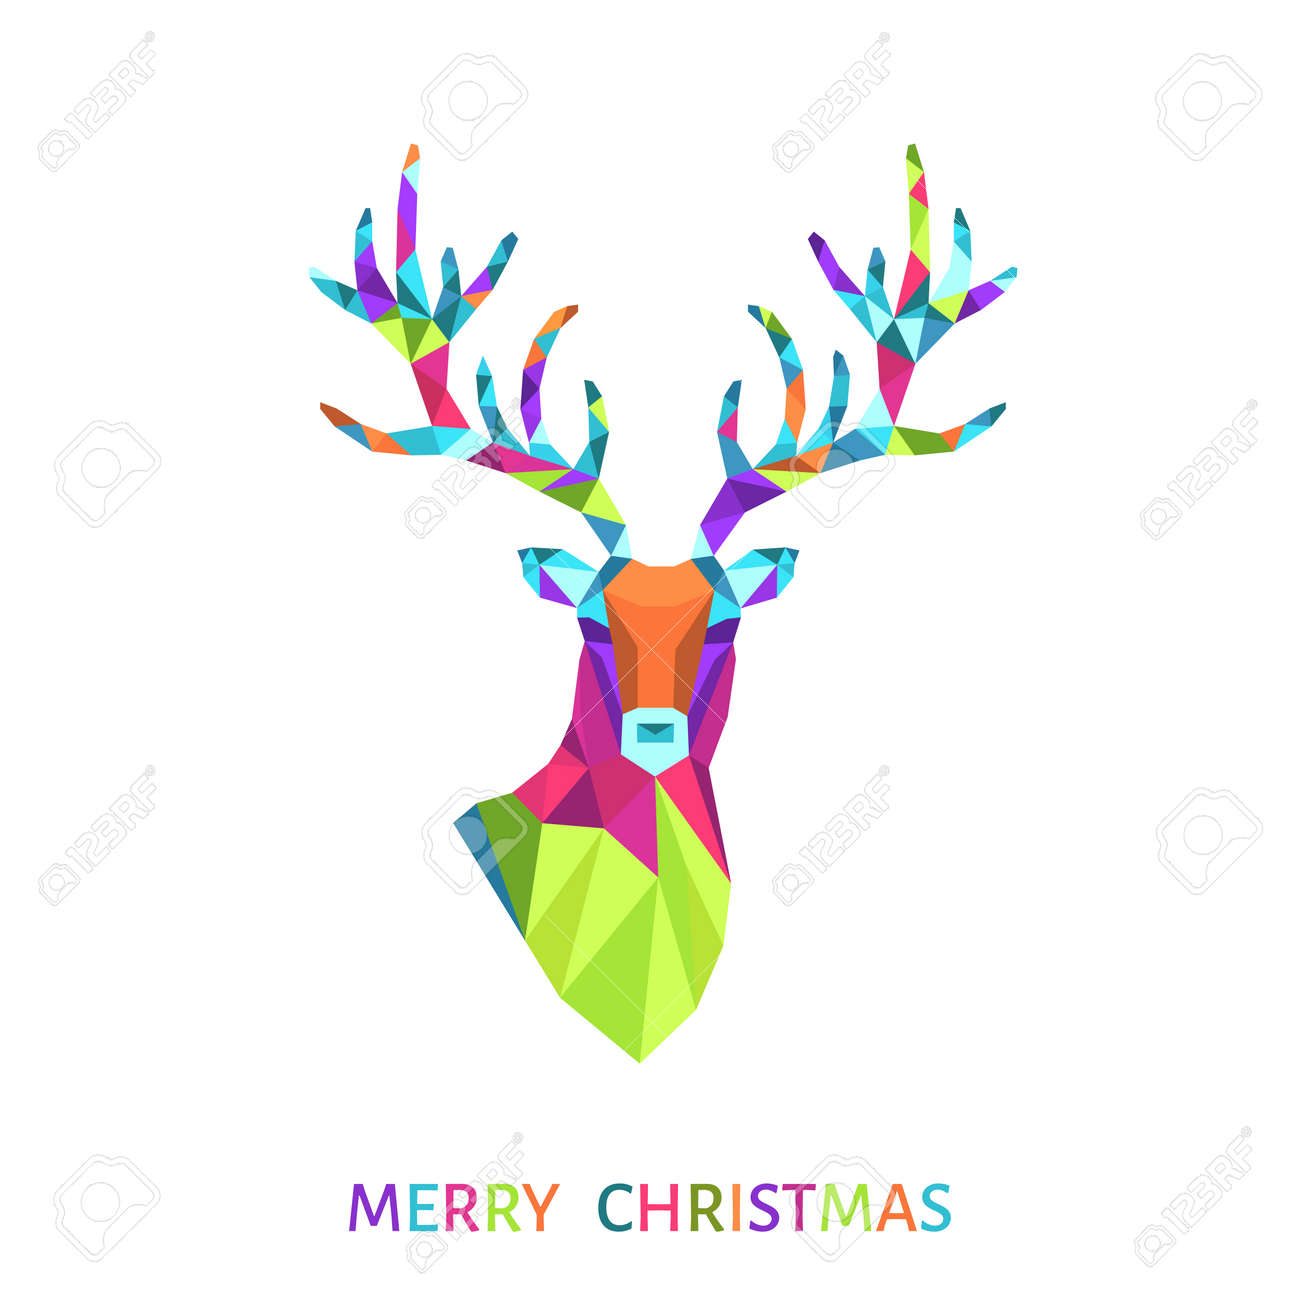 Bright Low Poly Triangle Deer Head Christmas Greeting Card With